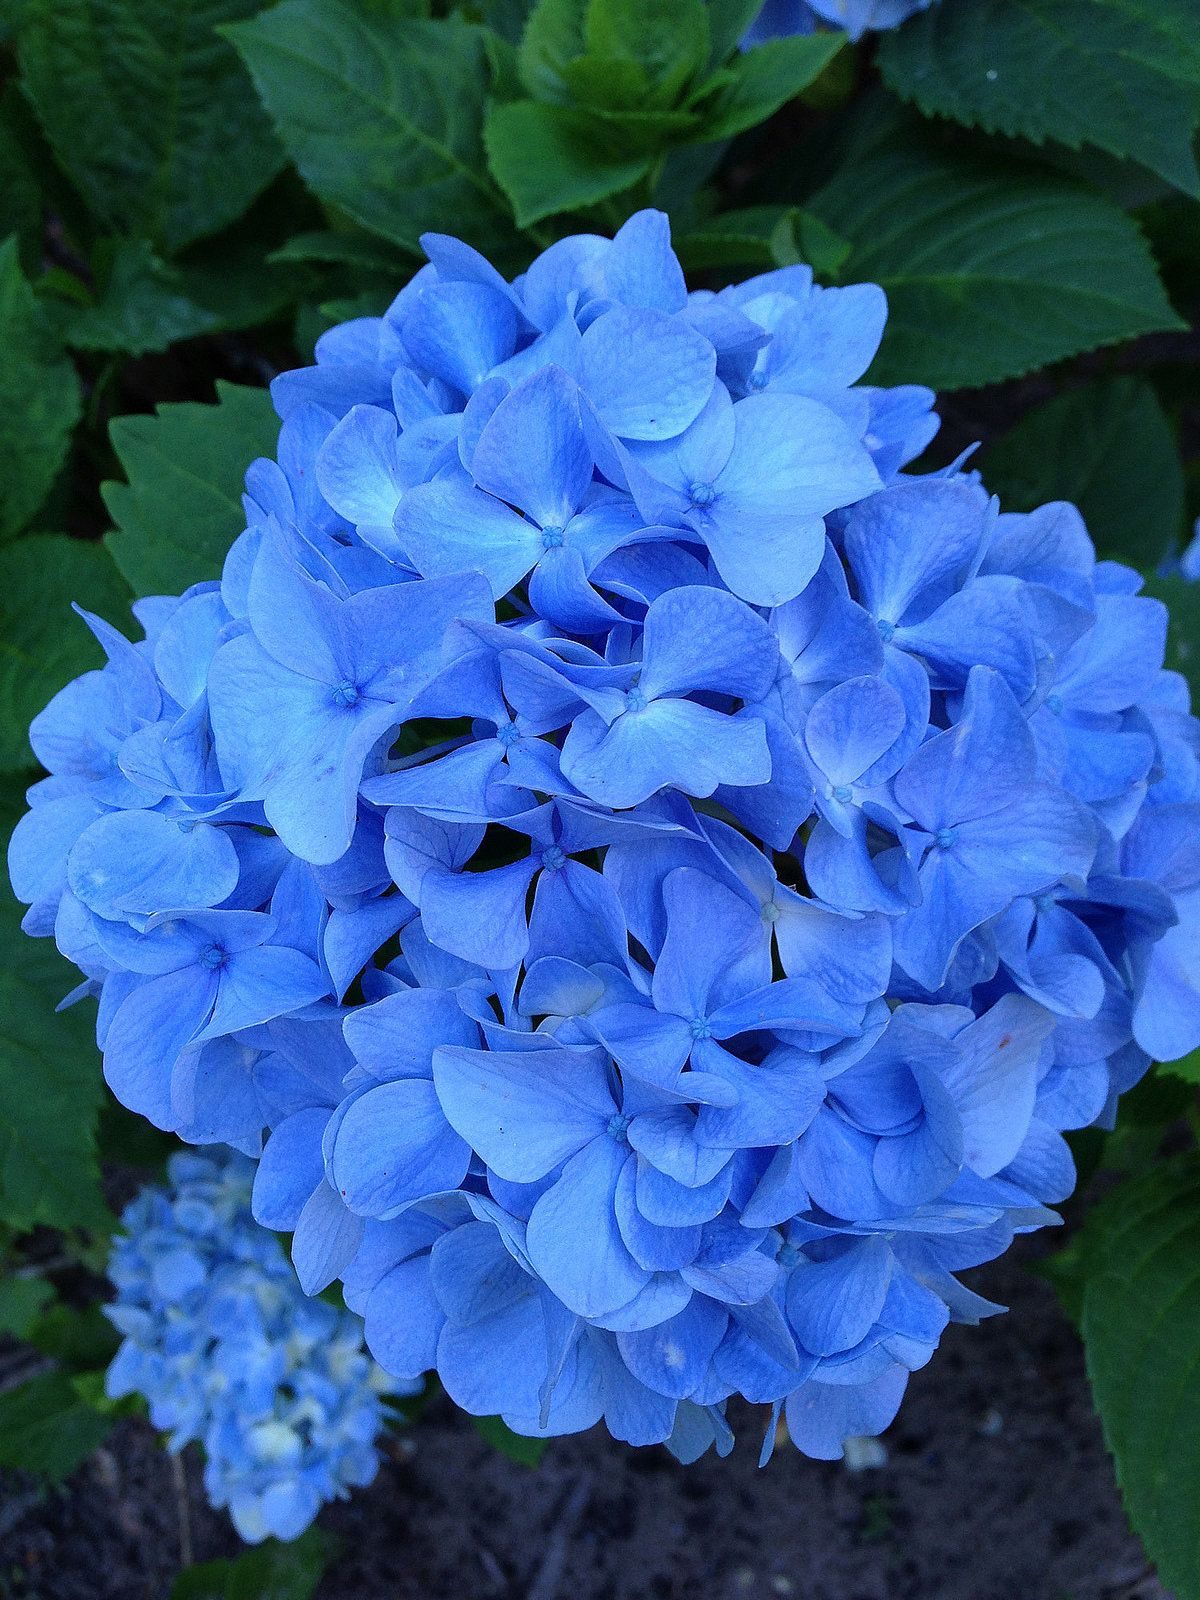 This trick will magically turn the shade of your hydrangeas this trick will magically turn the shade of your hydrangeas hydrangea bushblue hydrangeablue flowershydrangeasflowering izmirmasajfo